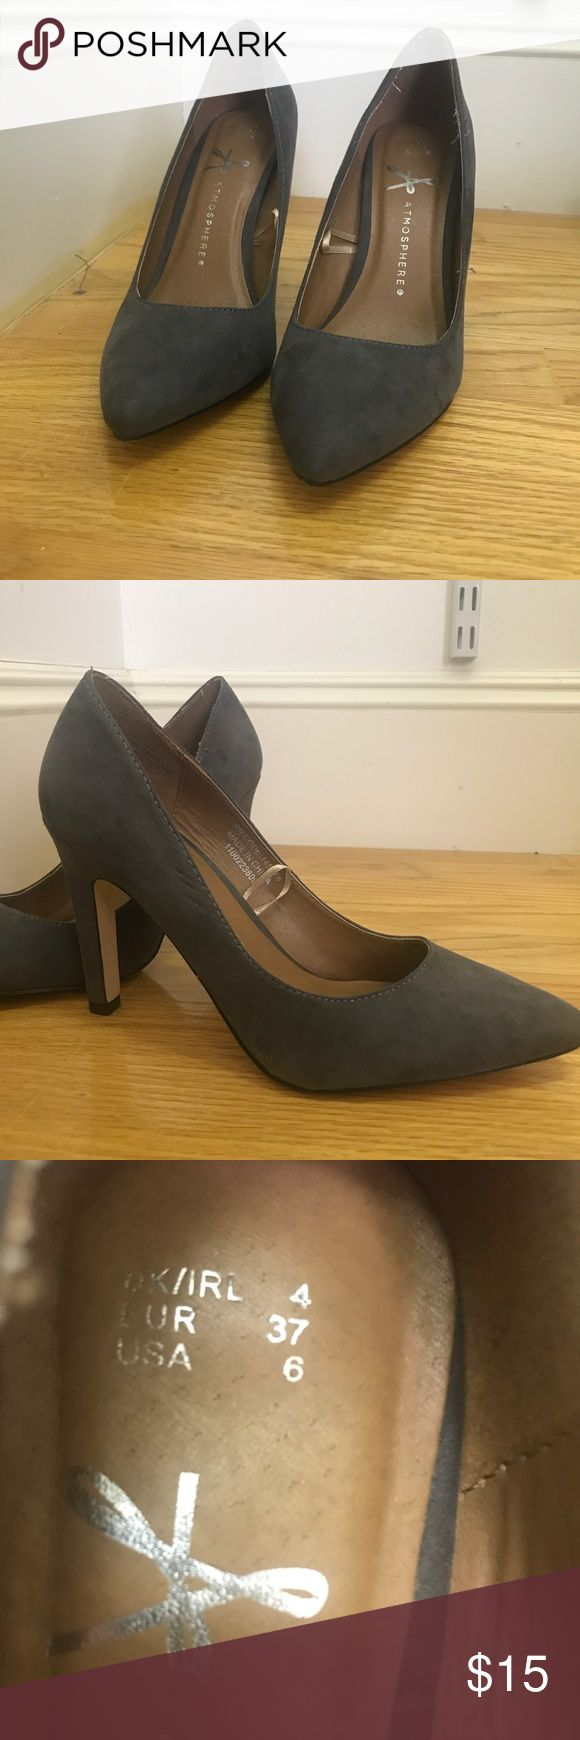 Gray suave heels from Primark Only worn twice, still in great condition! Primark Shoes Heels